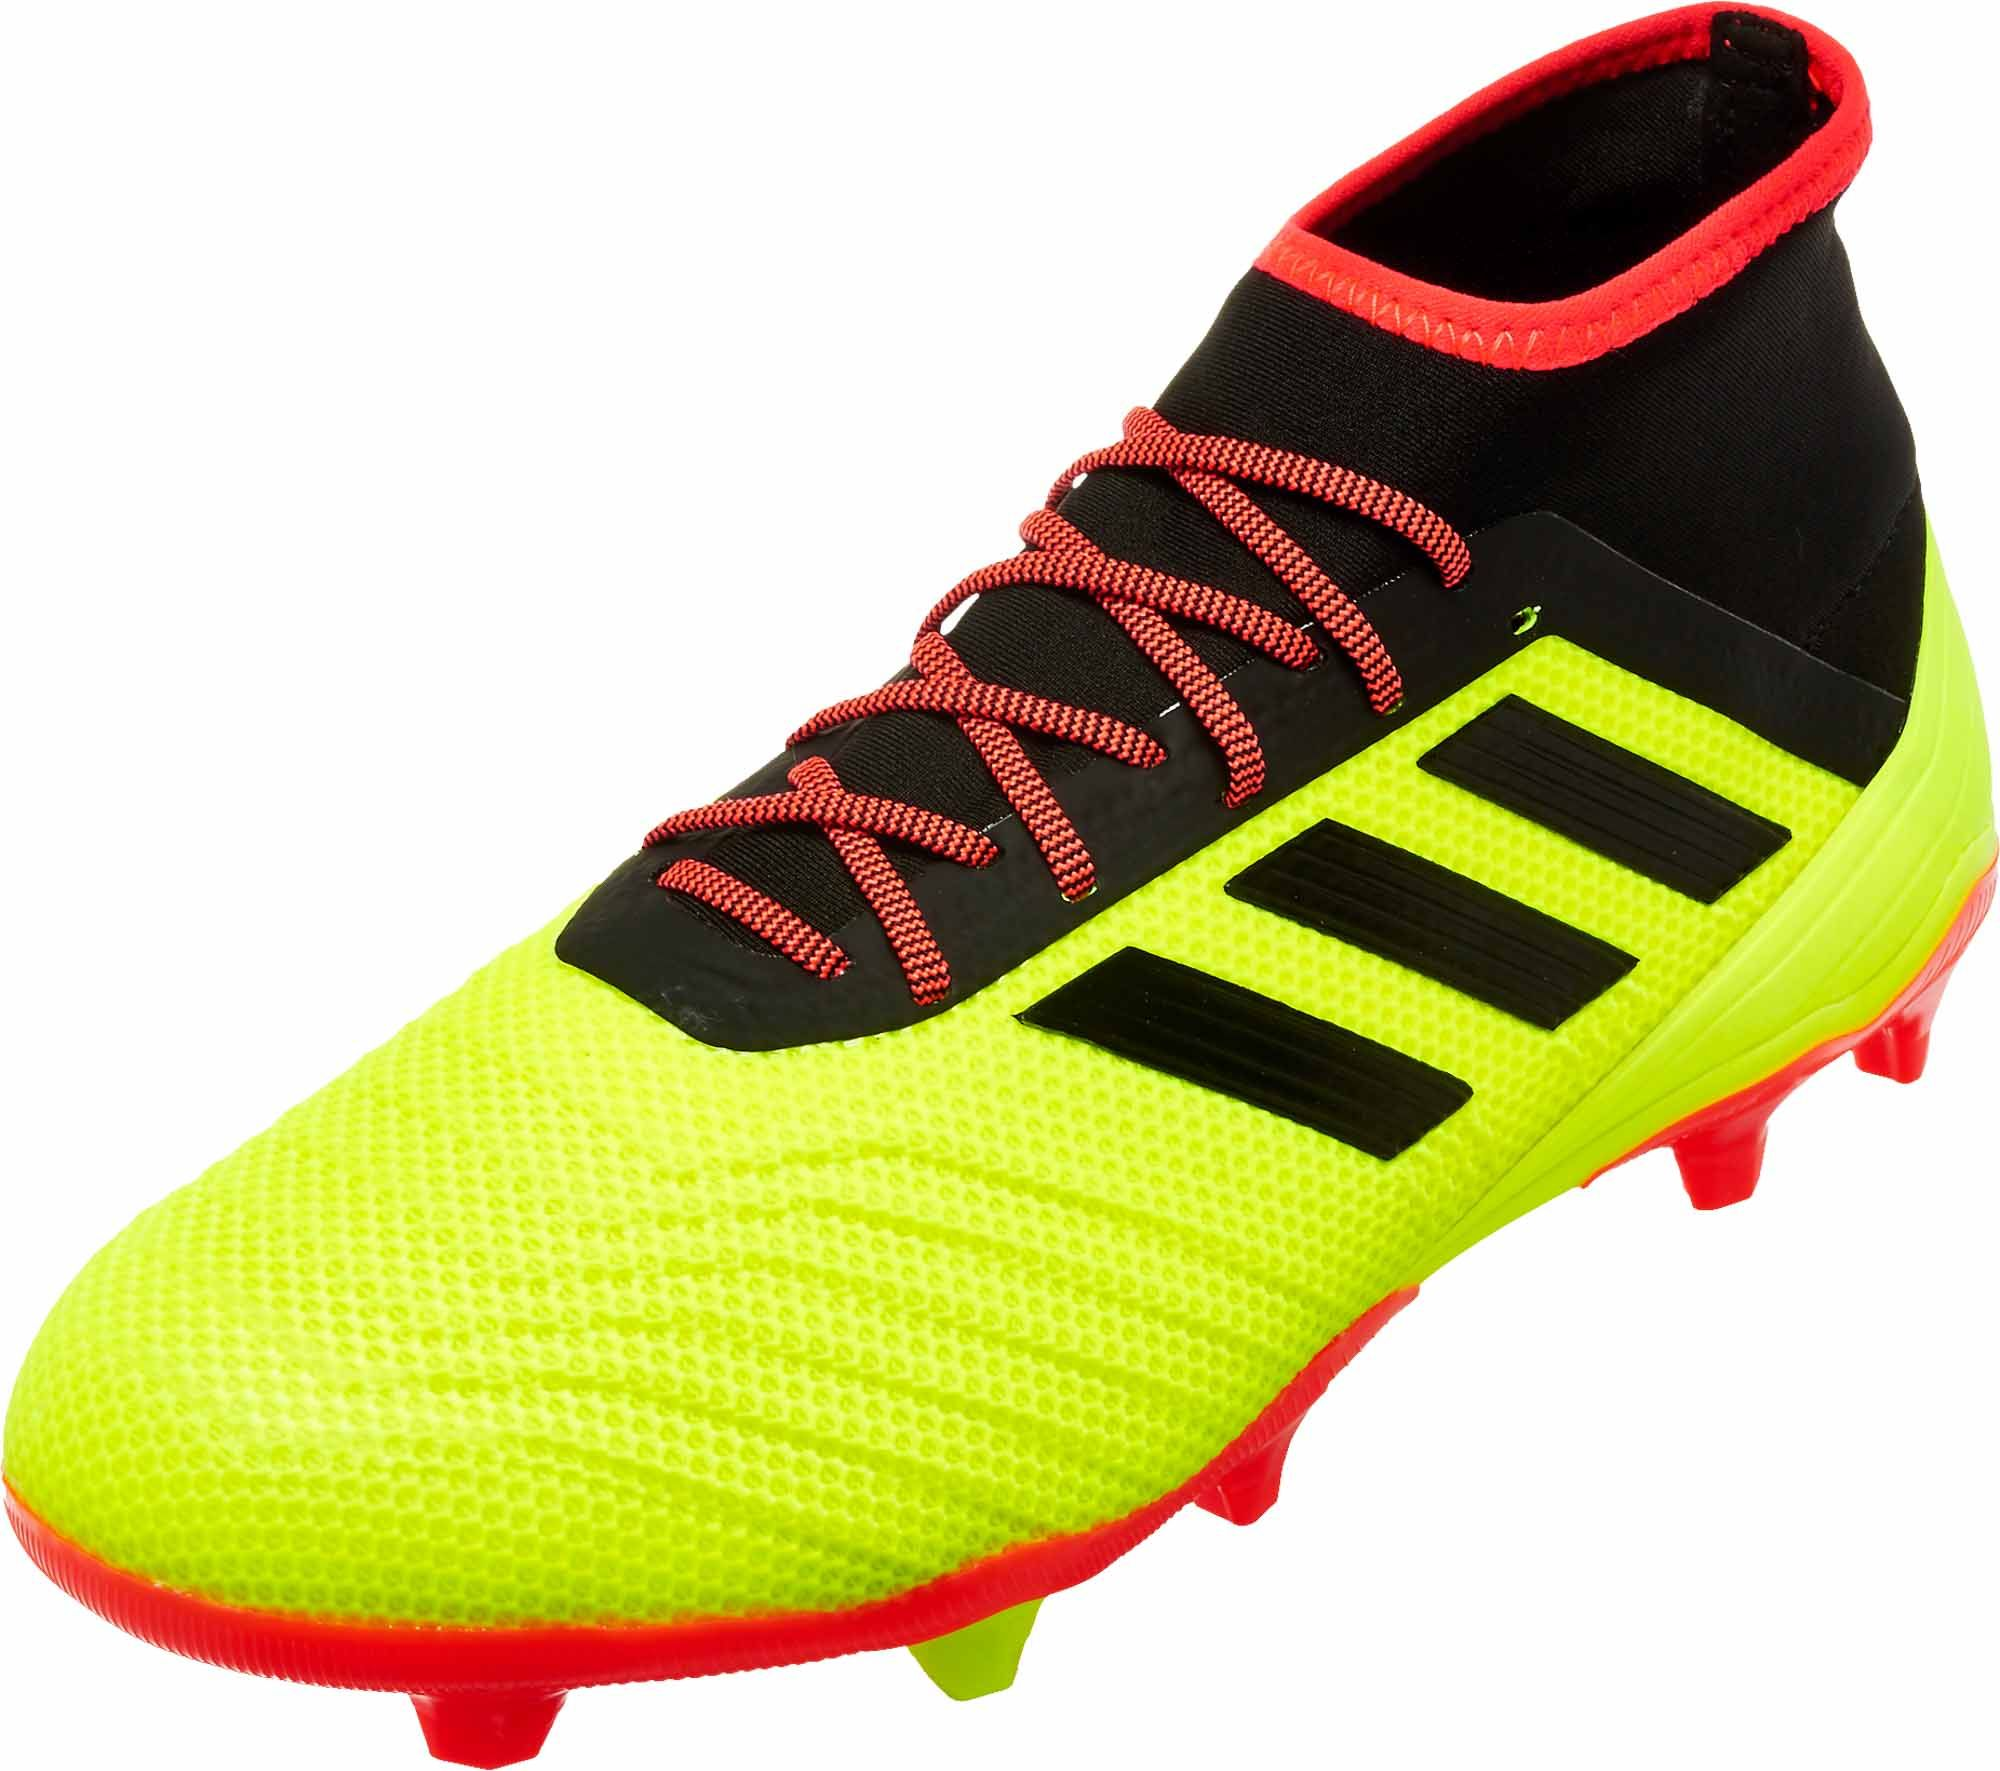 d531b75a1862 ... netherlands buy the adidas predator 18.2 from the energy mode pack at  soccerpro today. zapatos